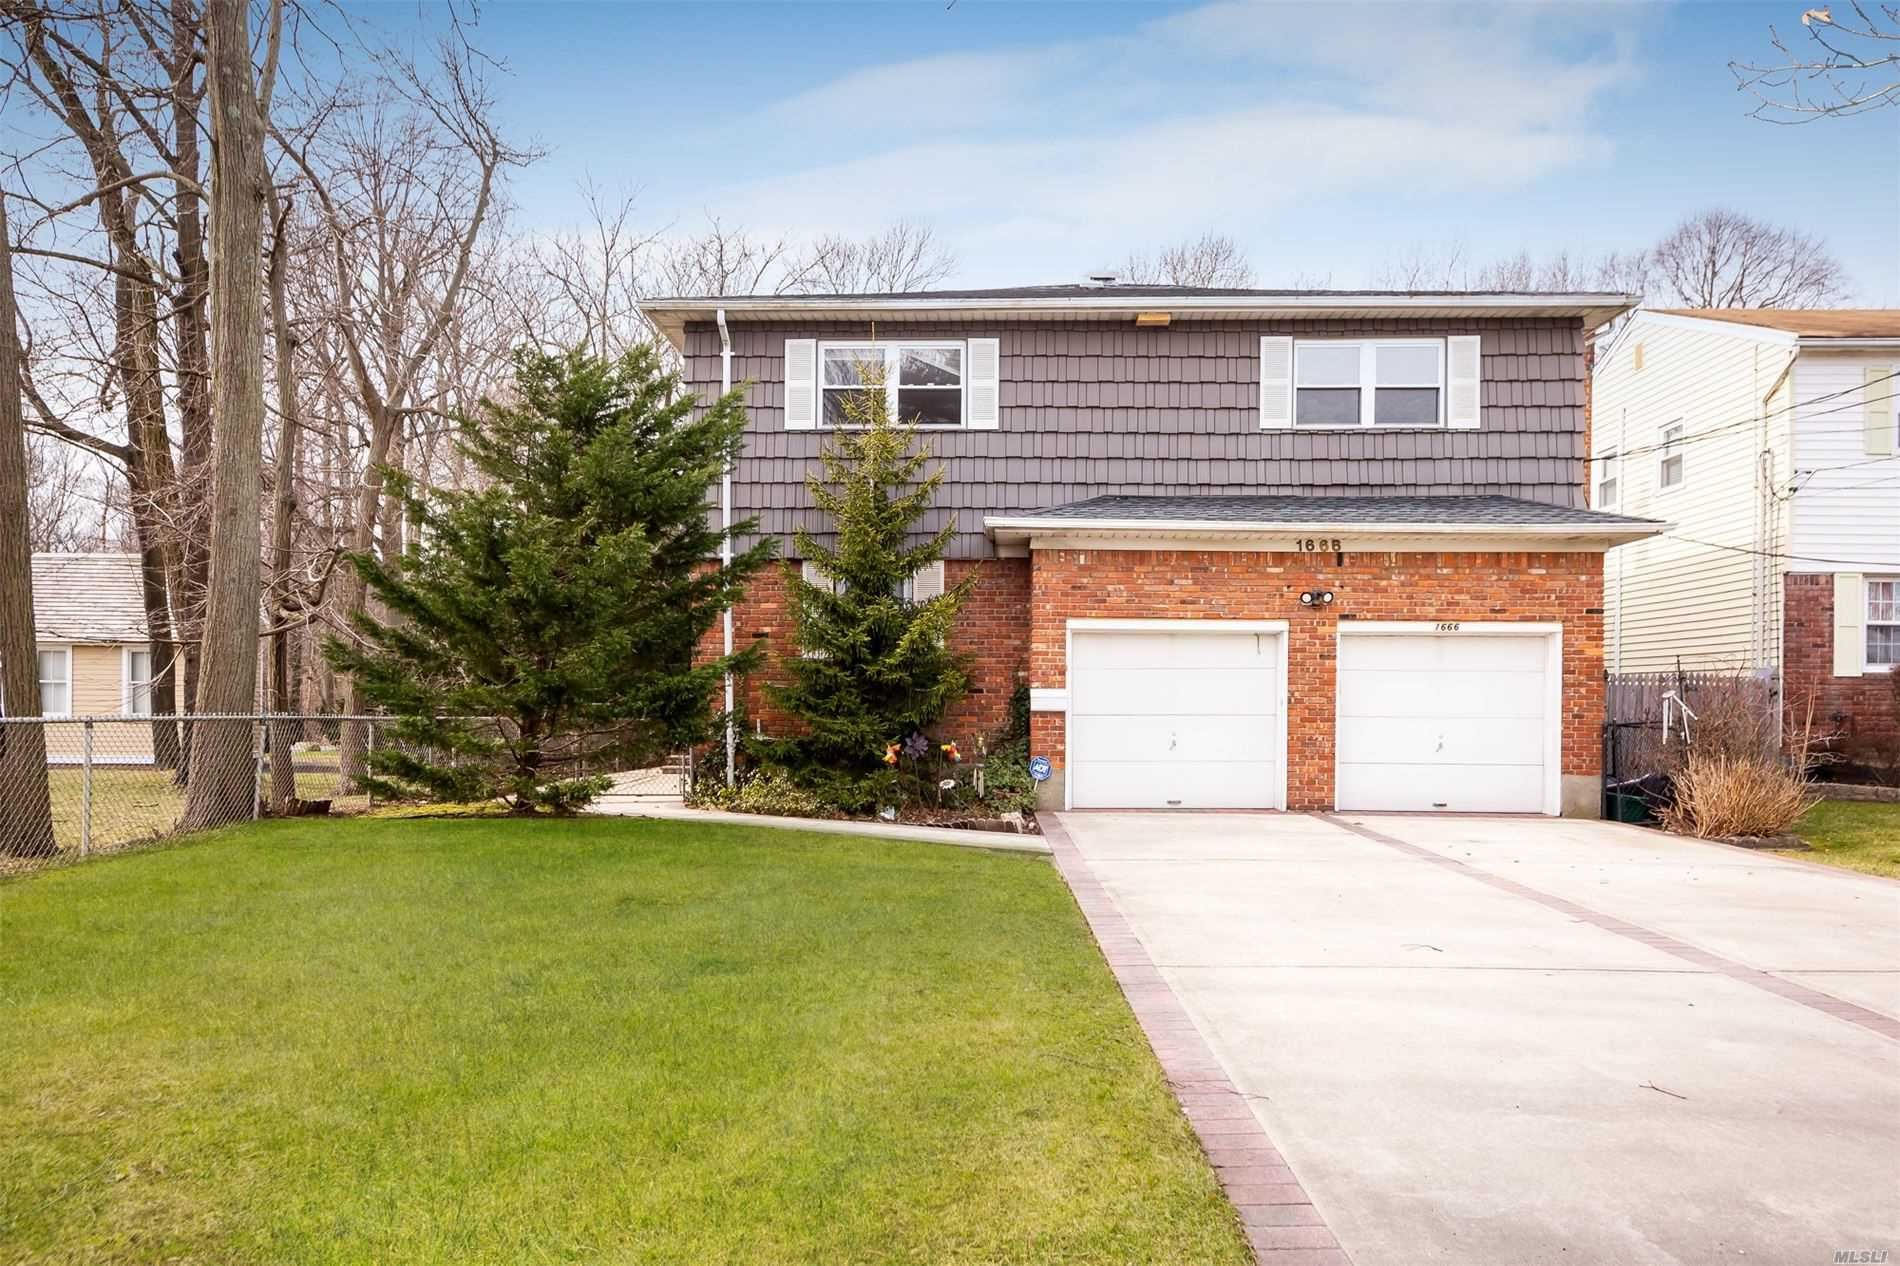 1666 Wantagh Avenue, Wantagh, NY 11793 - MLS#: 3199785